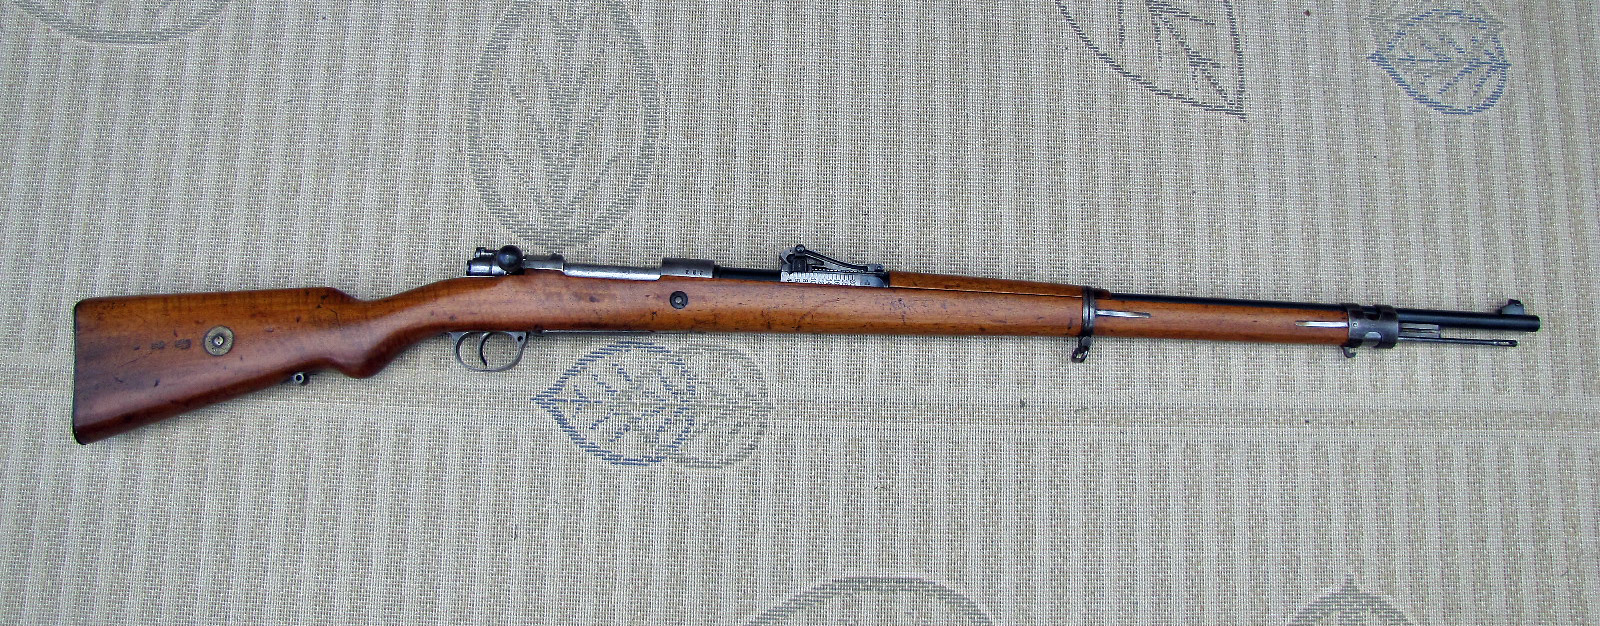 Milsurps Knowledge Library - 1916 Gewehr 98 Rifle (Mfg by